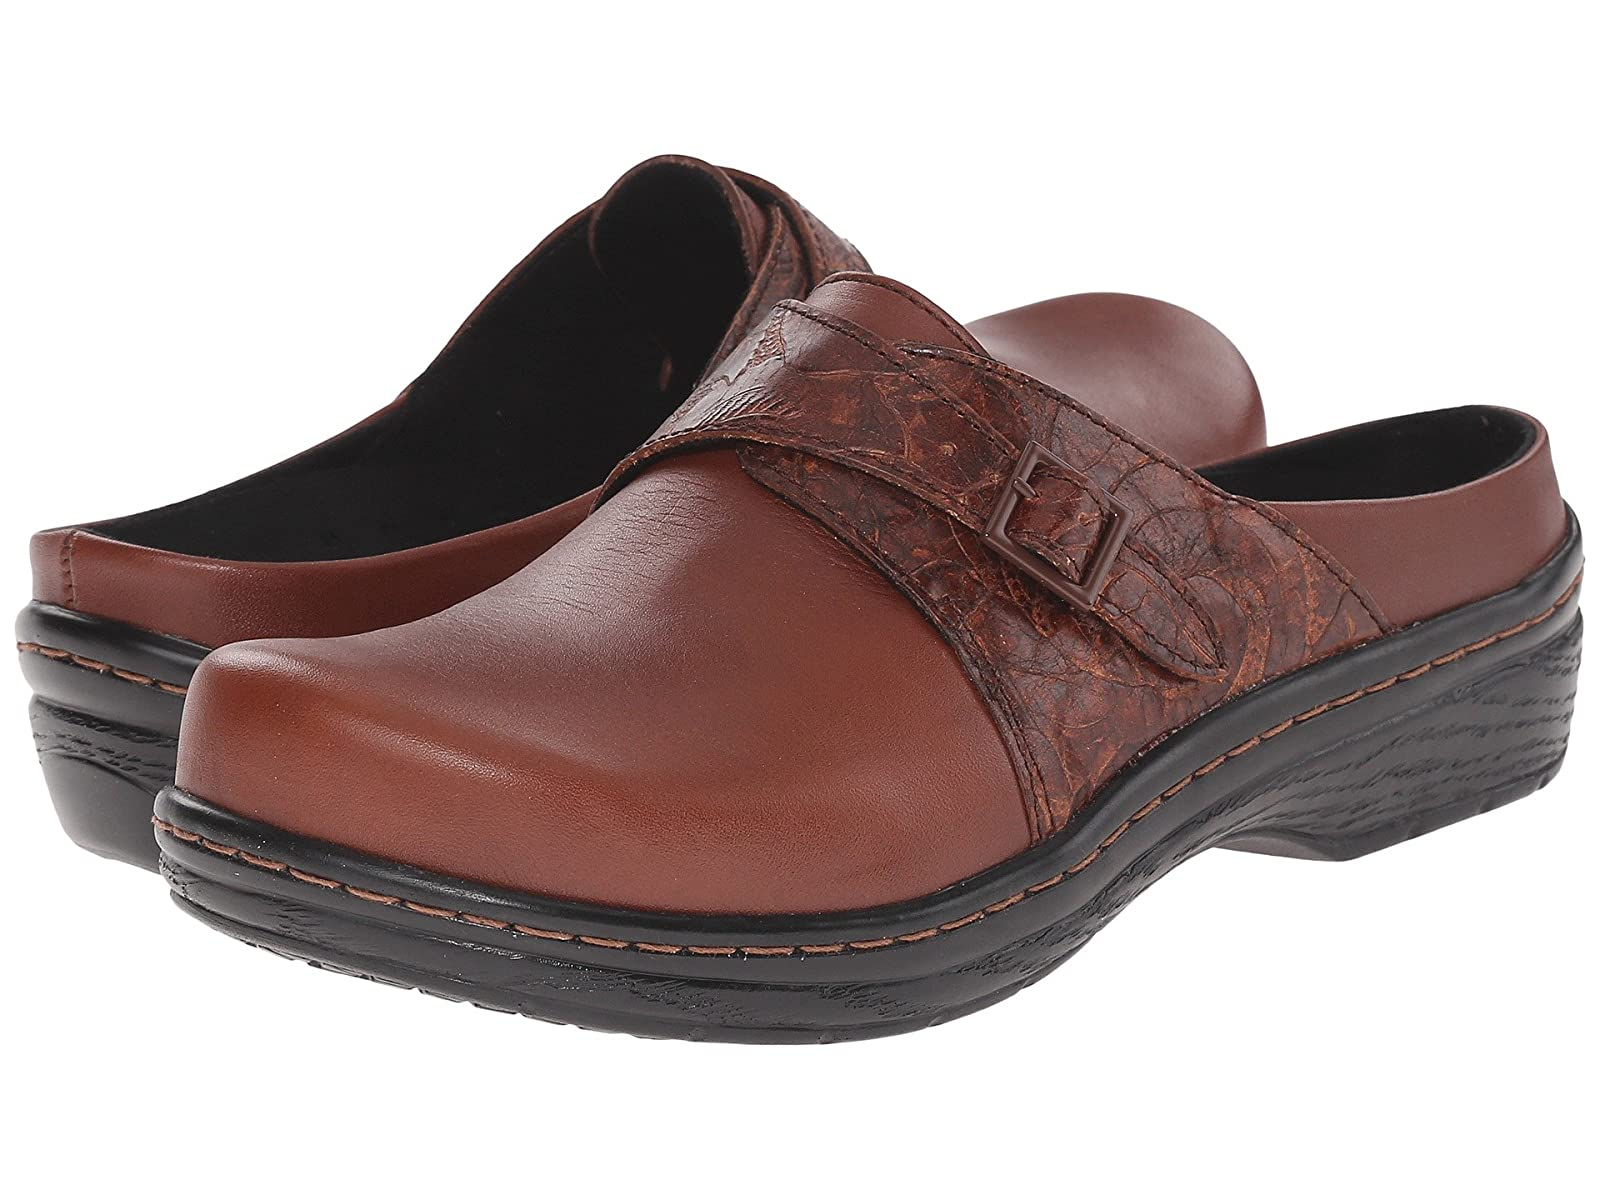 Klogs Footwear BristolAtmospheric grades have affordable shoes